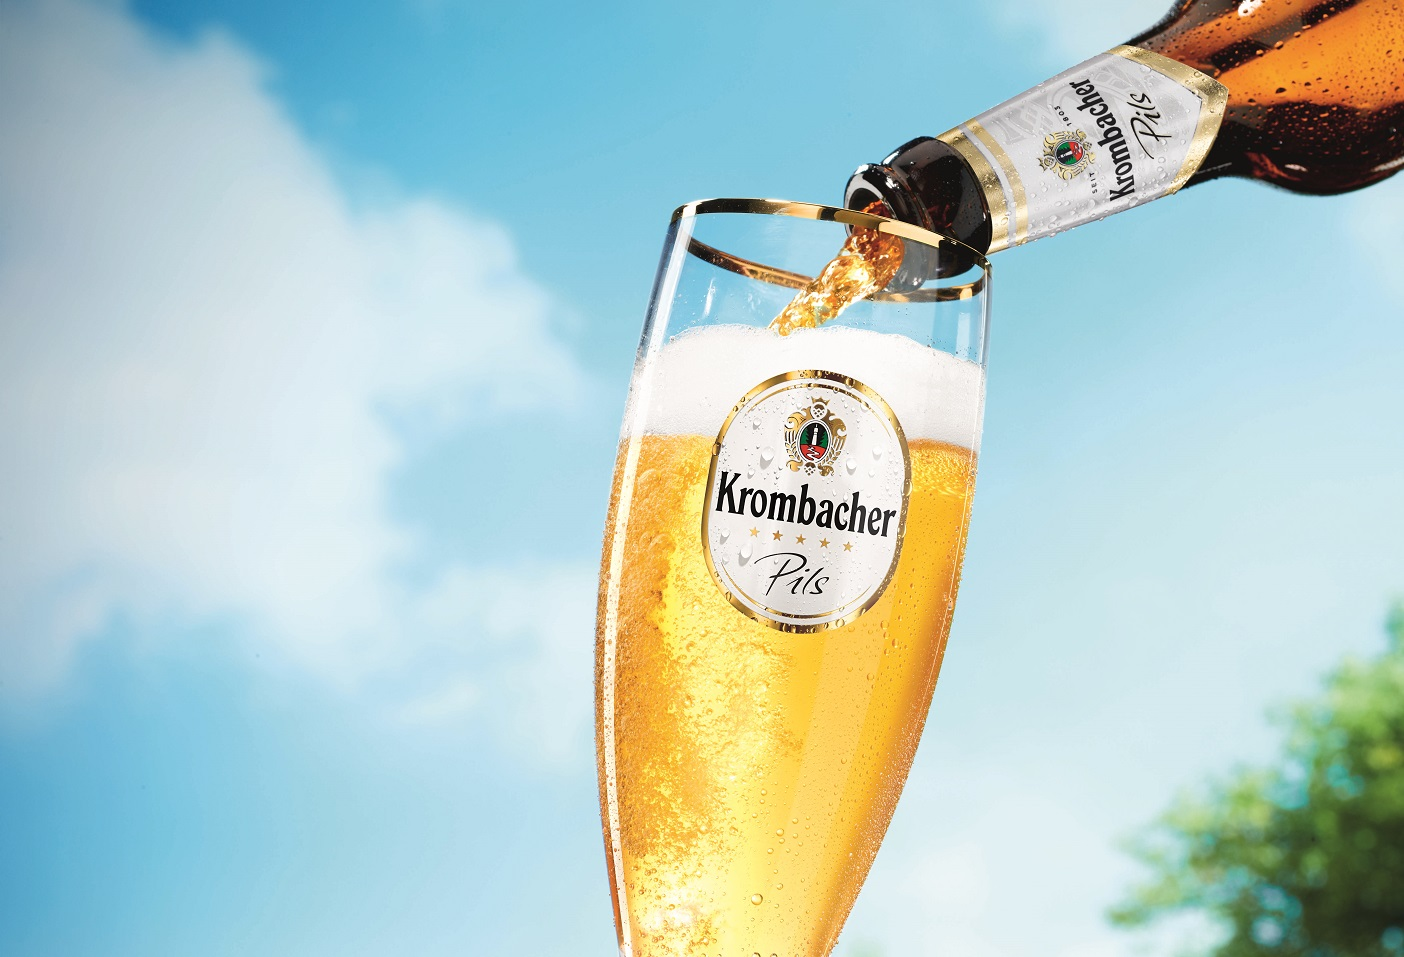 Krombacher Pils being poured into a tall glass